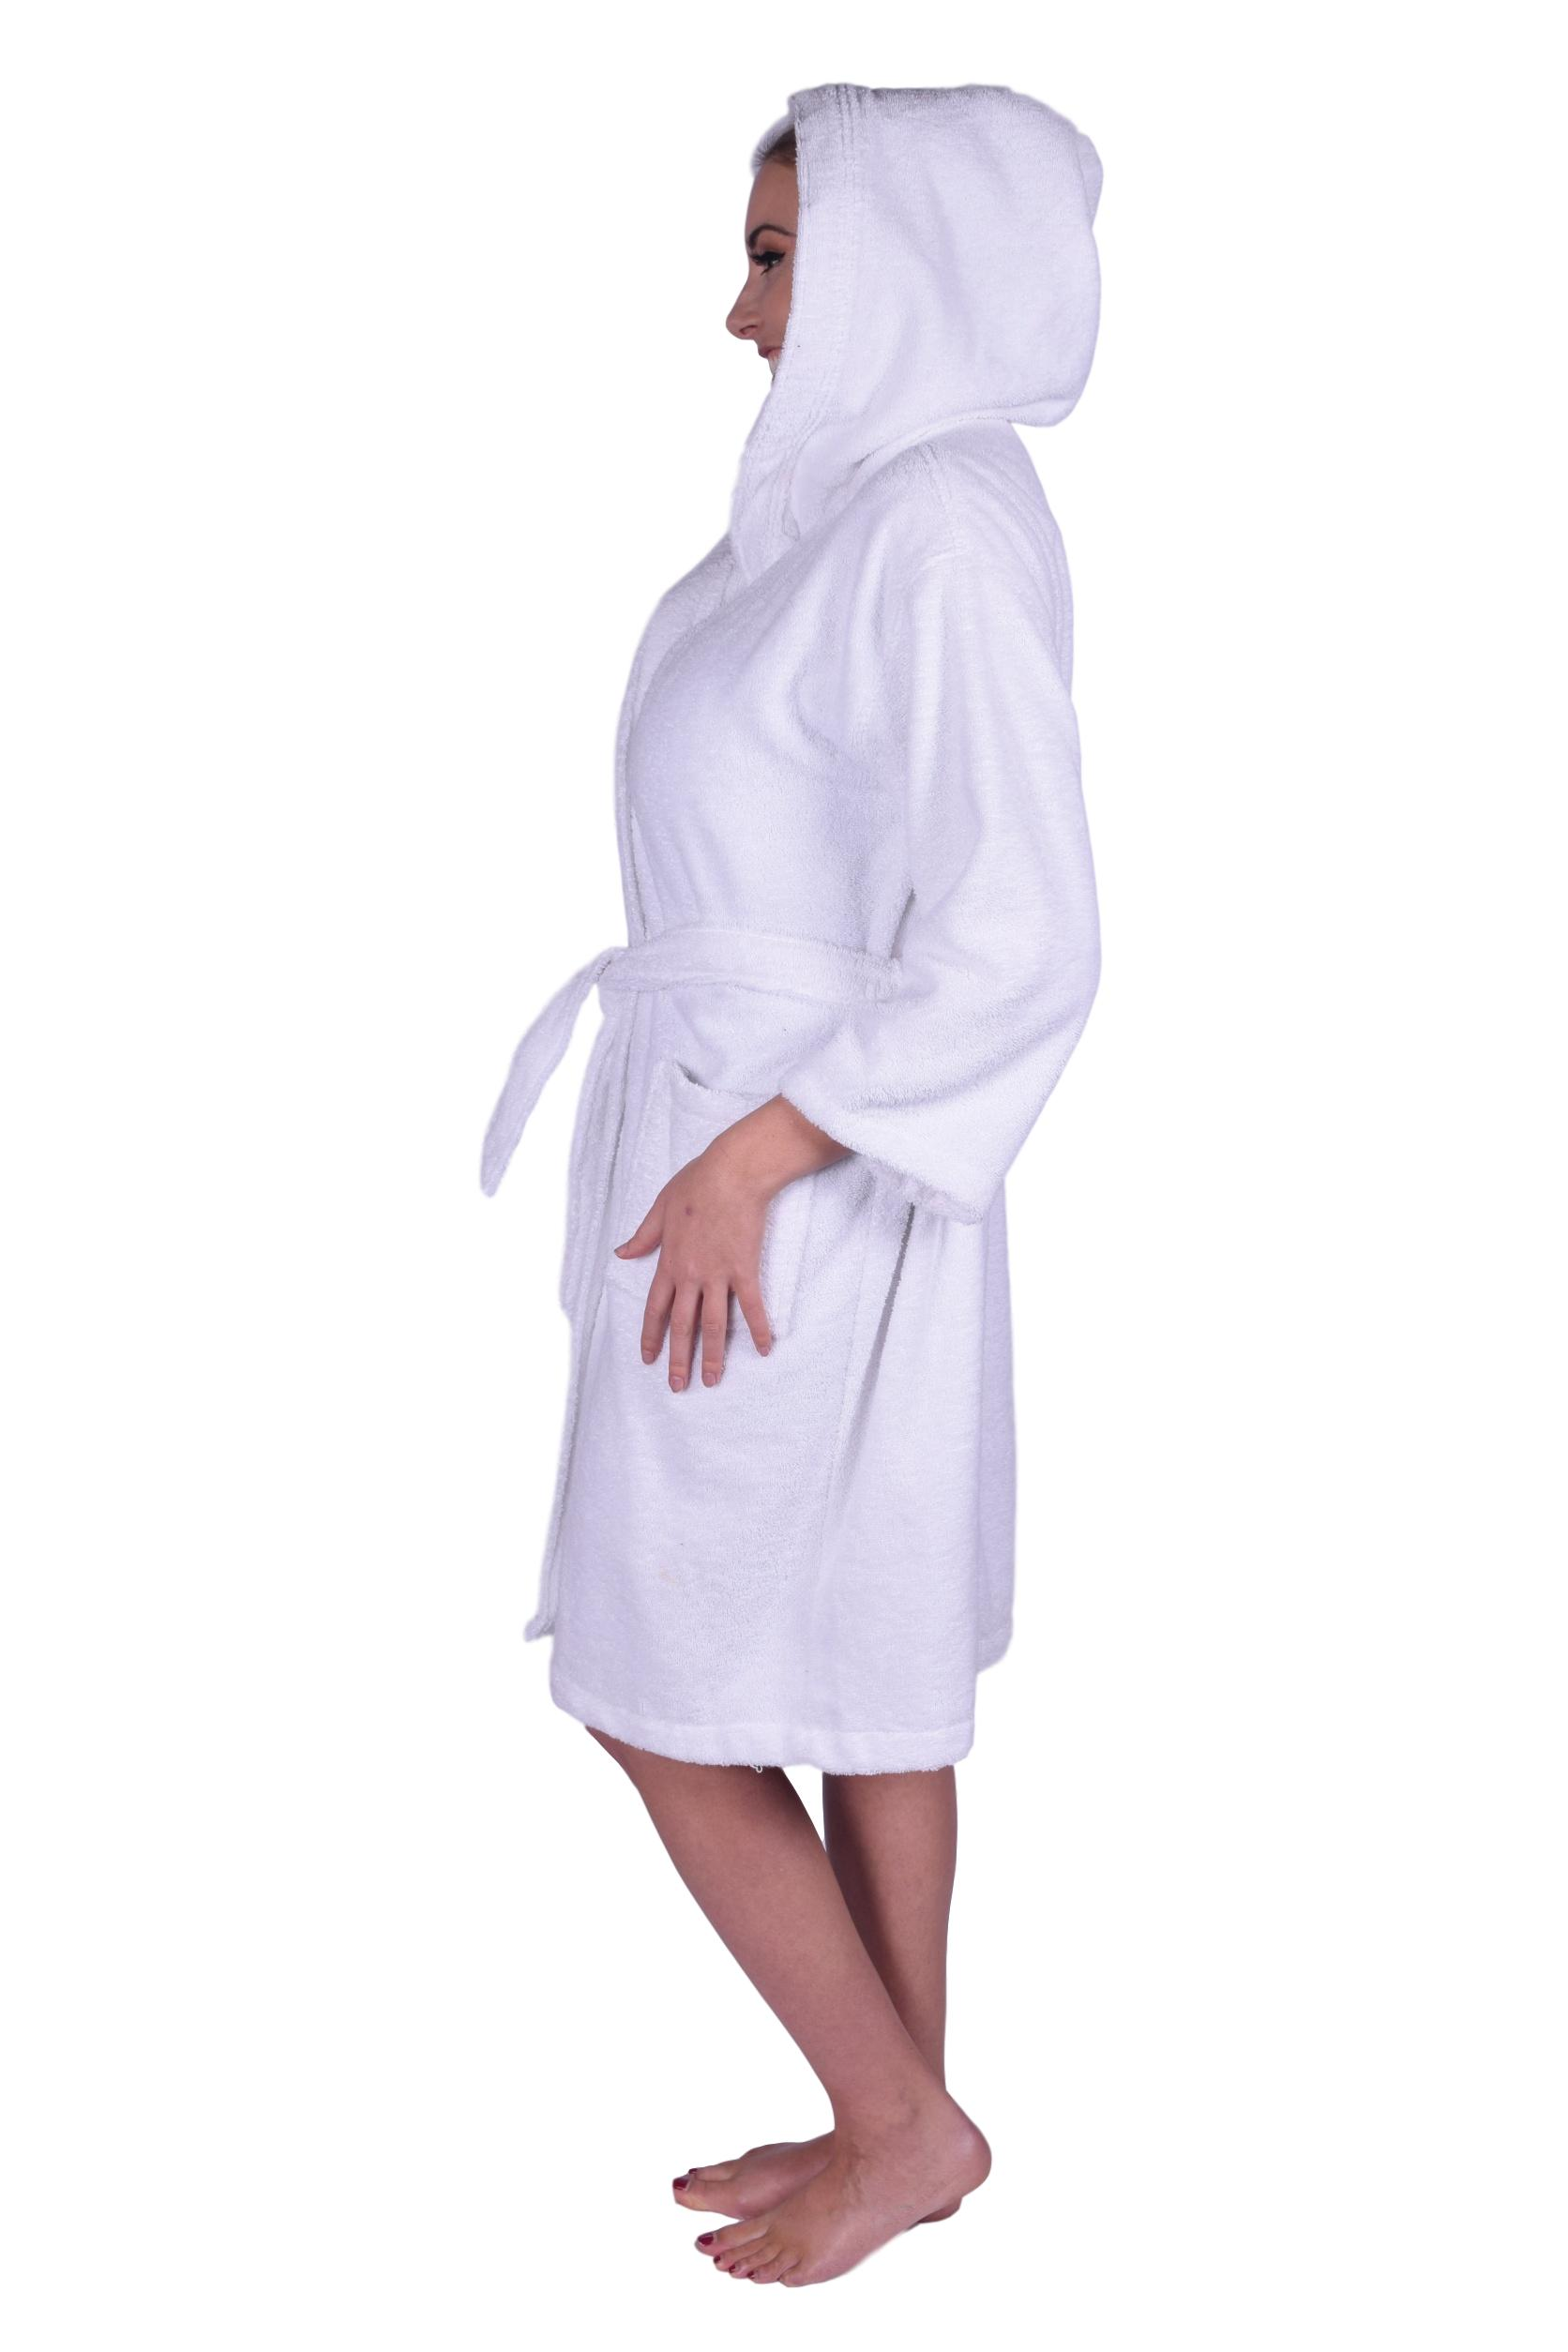 28bb95700f Puffy Cotton - Premium Teen   Petite Unisex Hoodie Bath Robe 100% Natural  Soft Cotton - White - Walmart.com